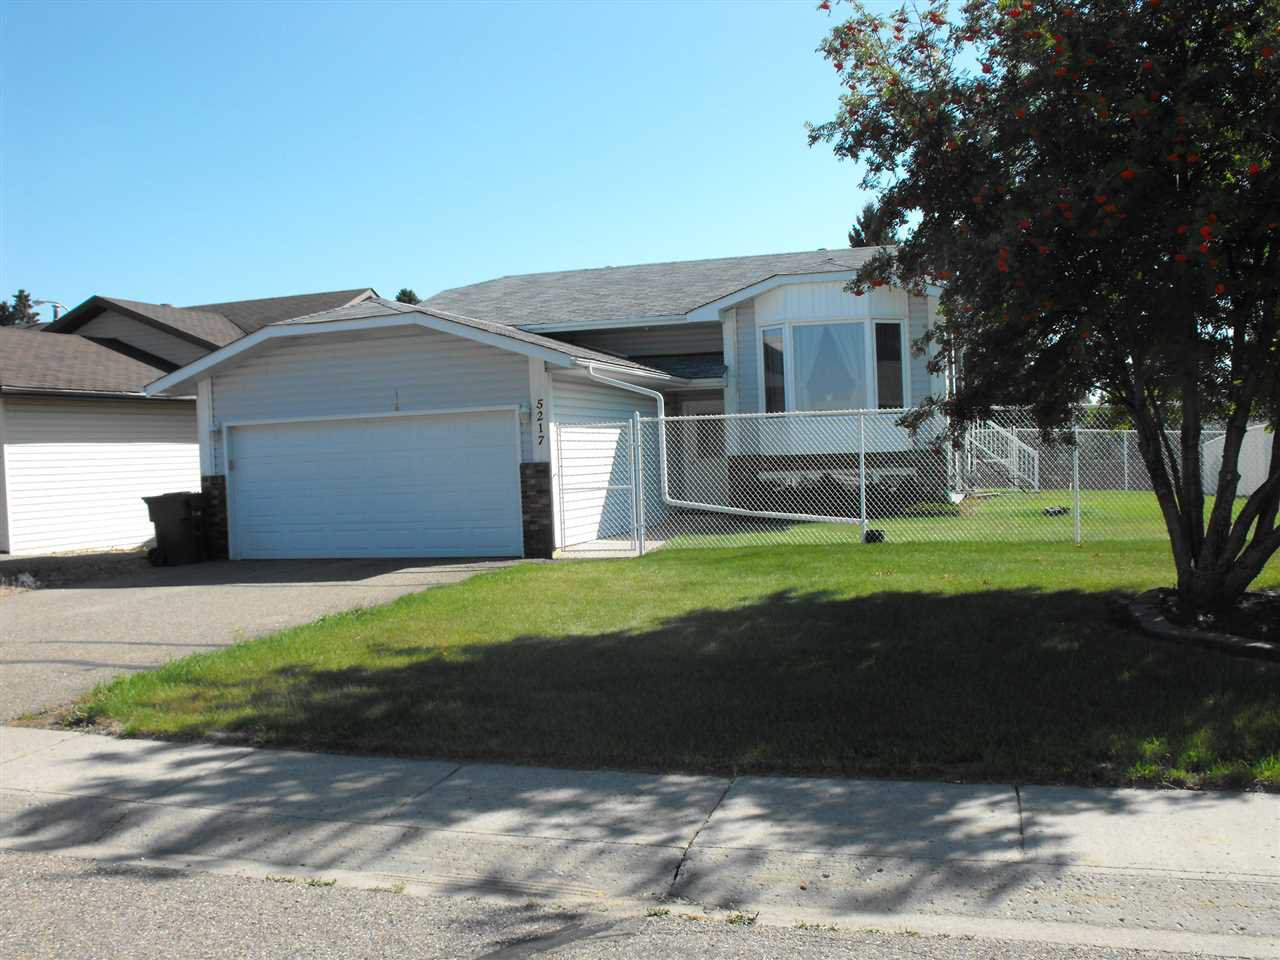 Main Photo: 5217 54A Street: Elk Point House for sale : MLS®# E4210955